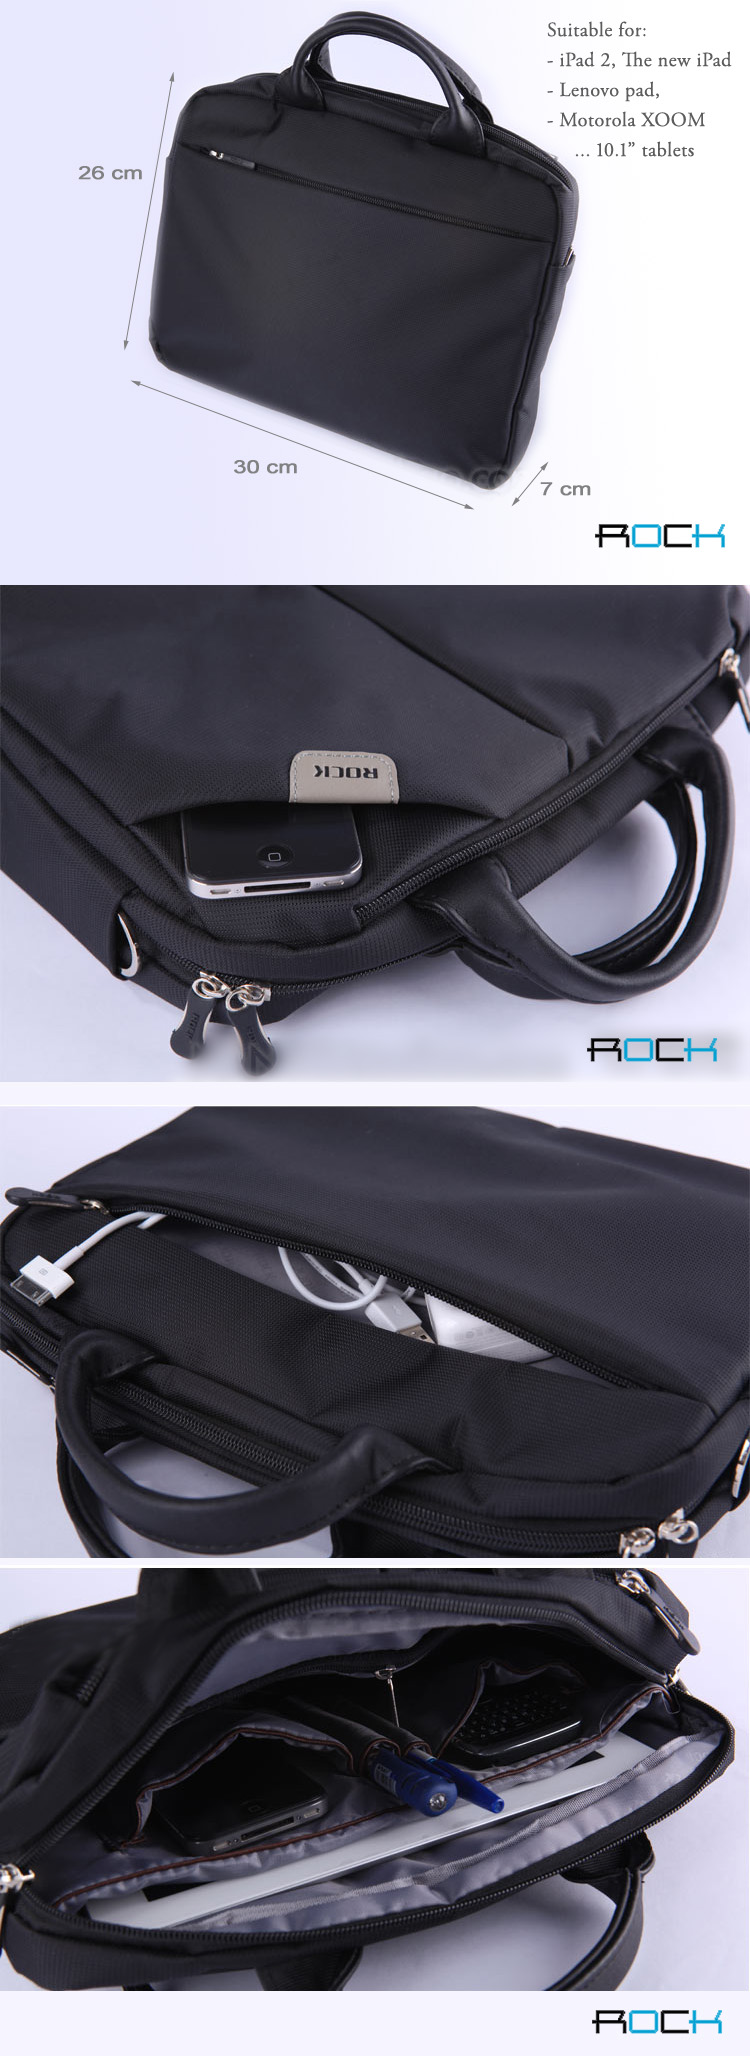 ROCK iPad 2 / The new iPad (iPad 3) and PC Tablet  Sleeve Bags - Nylon jacquard with watertighting 210D lining, Anti-shock, Durable